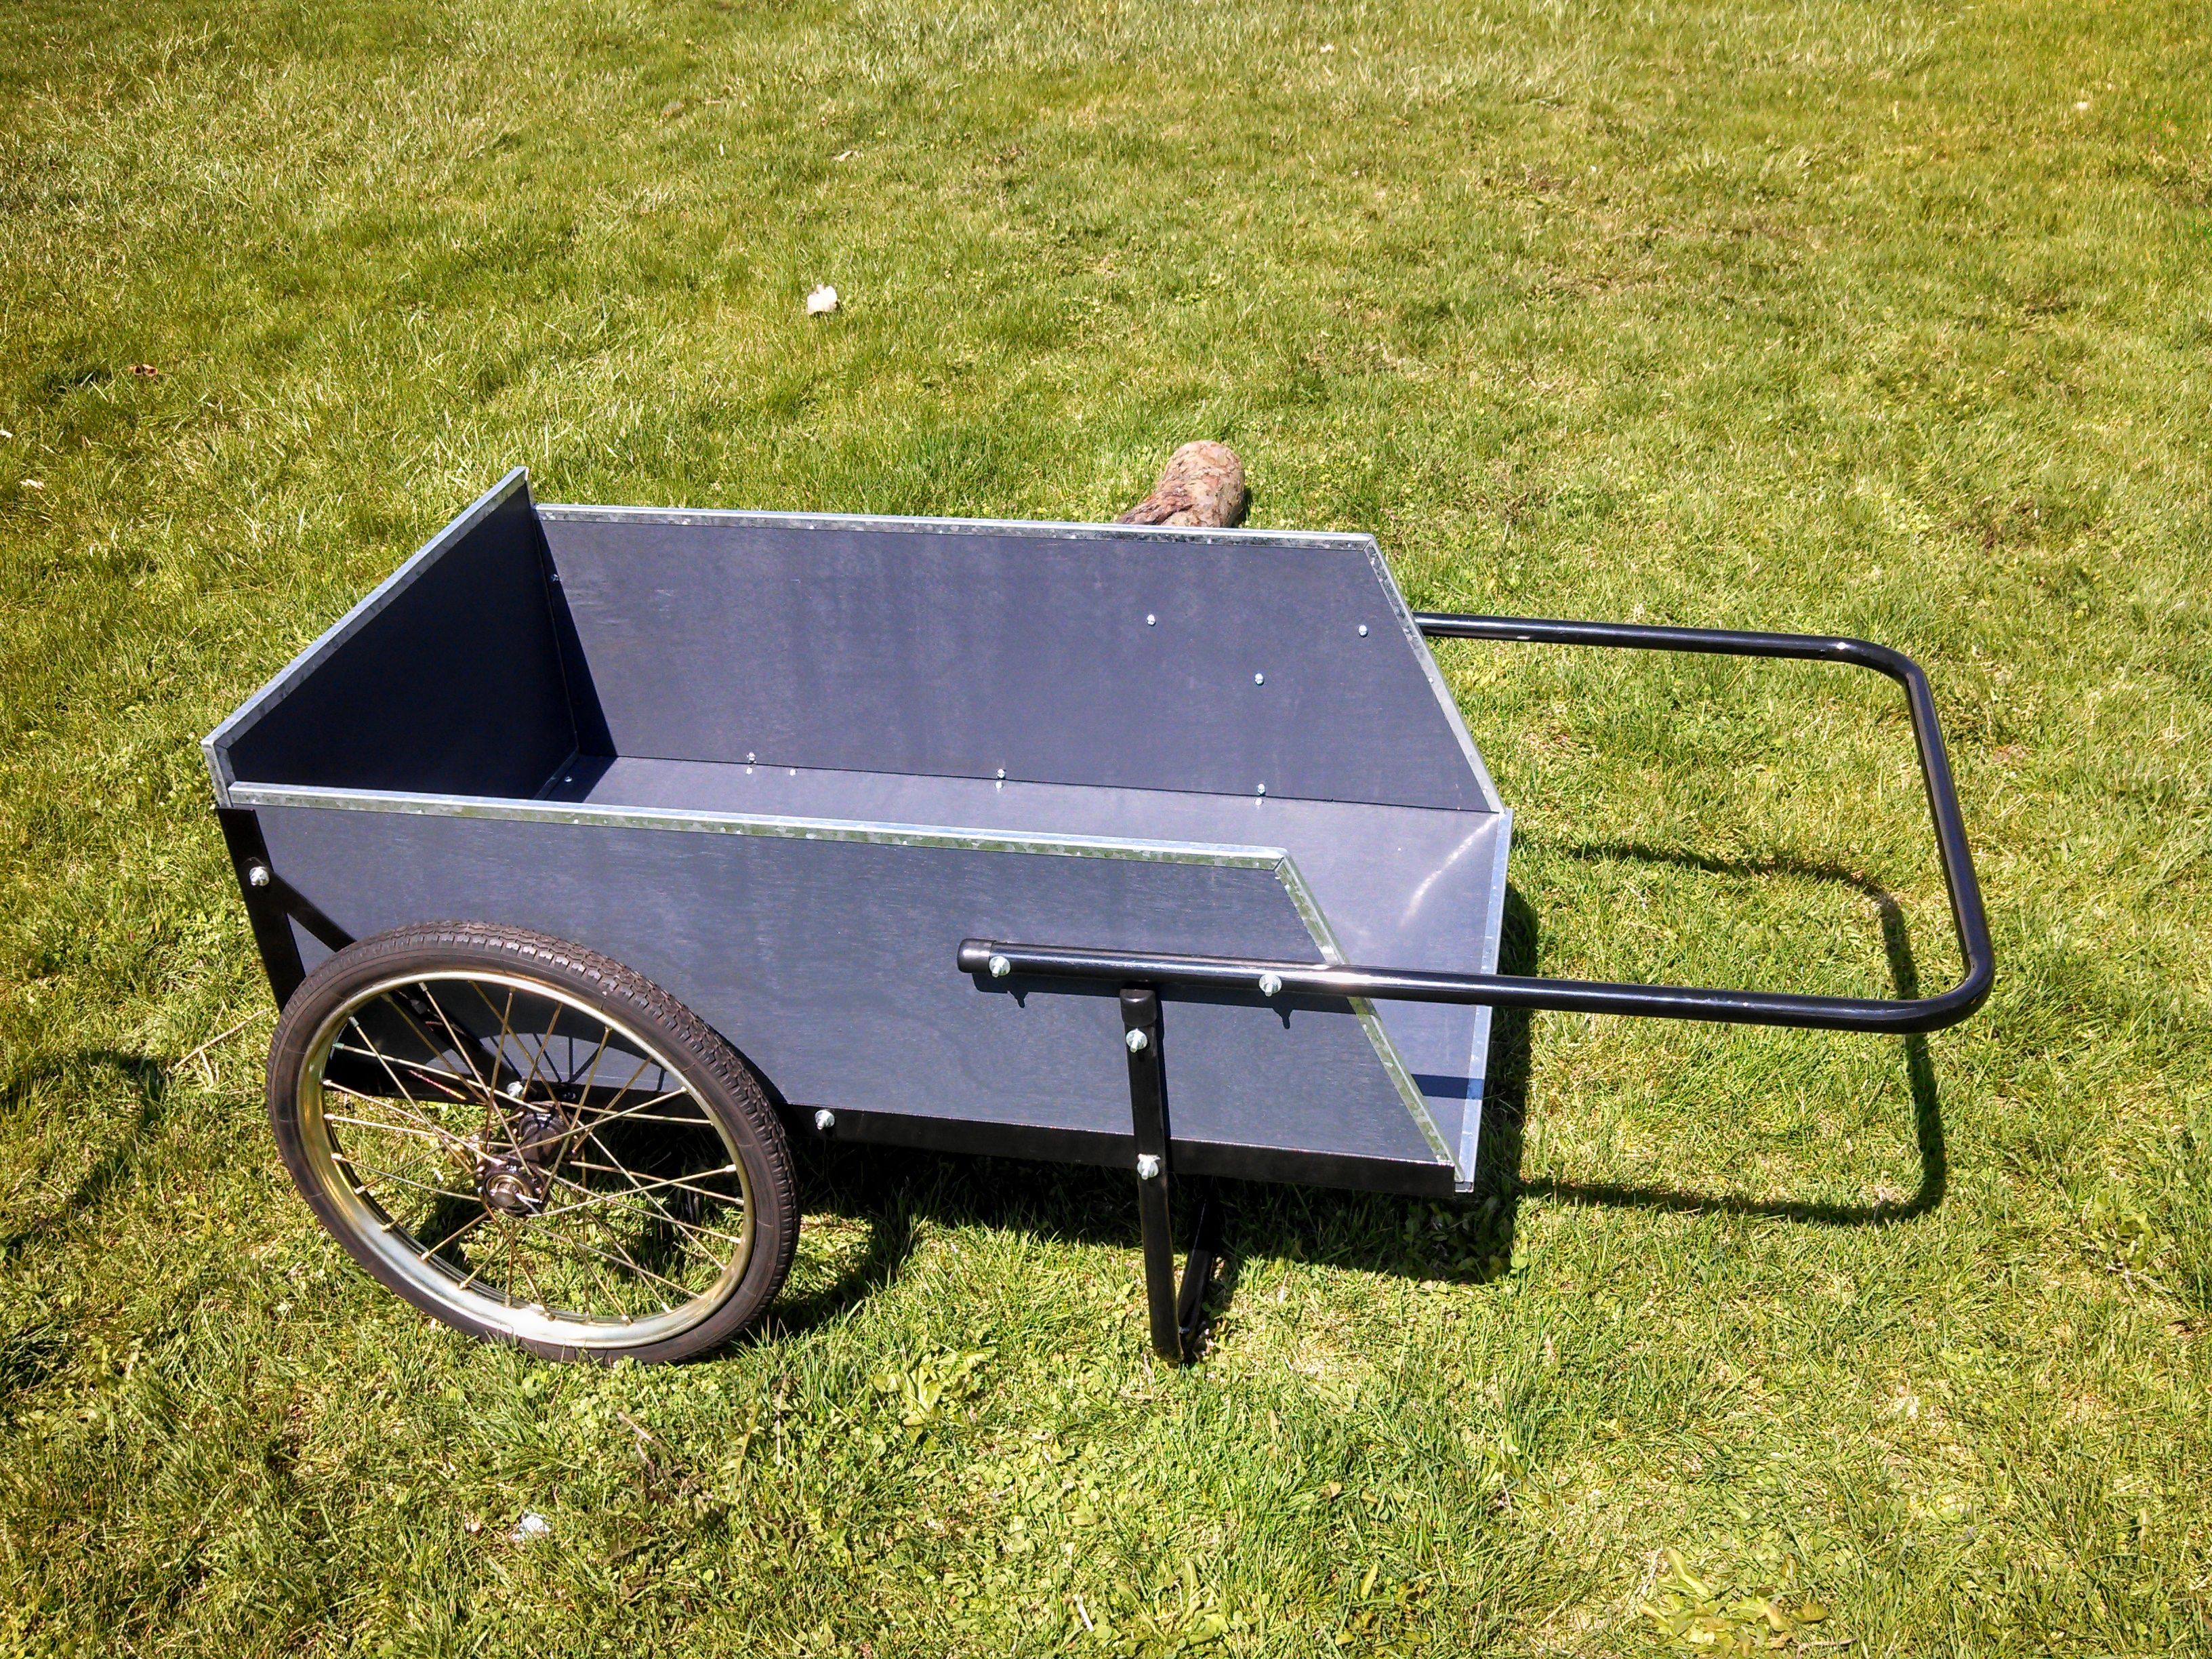 STANDARD-DUTY WOODEN UTILITY CART